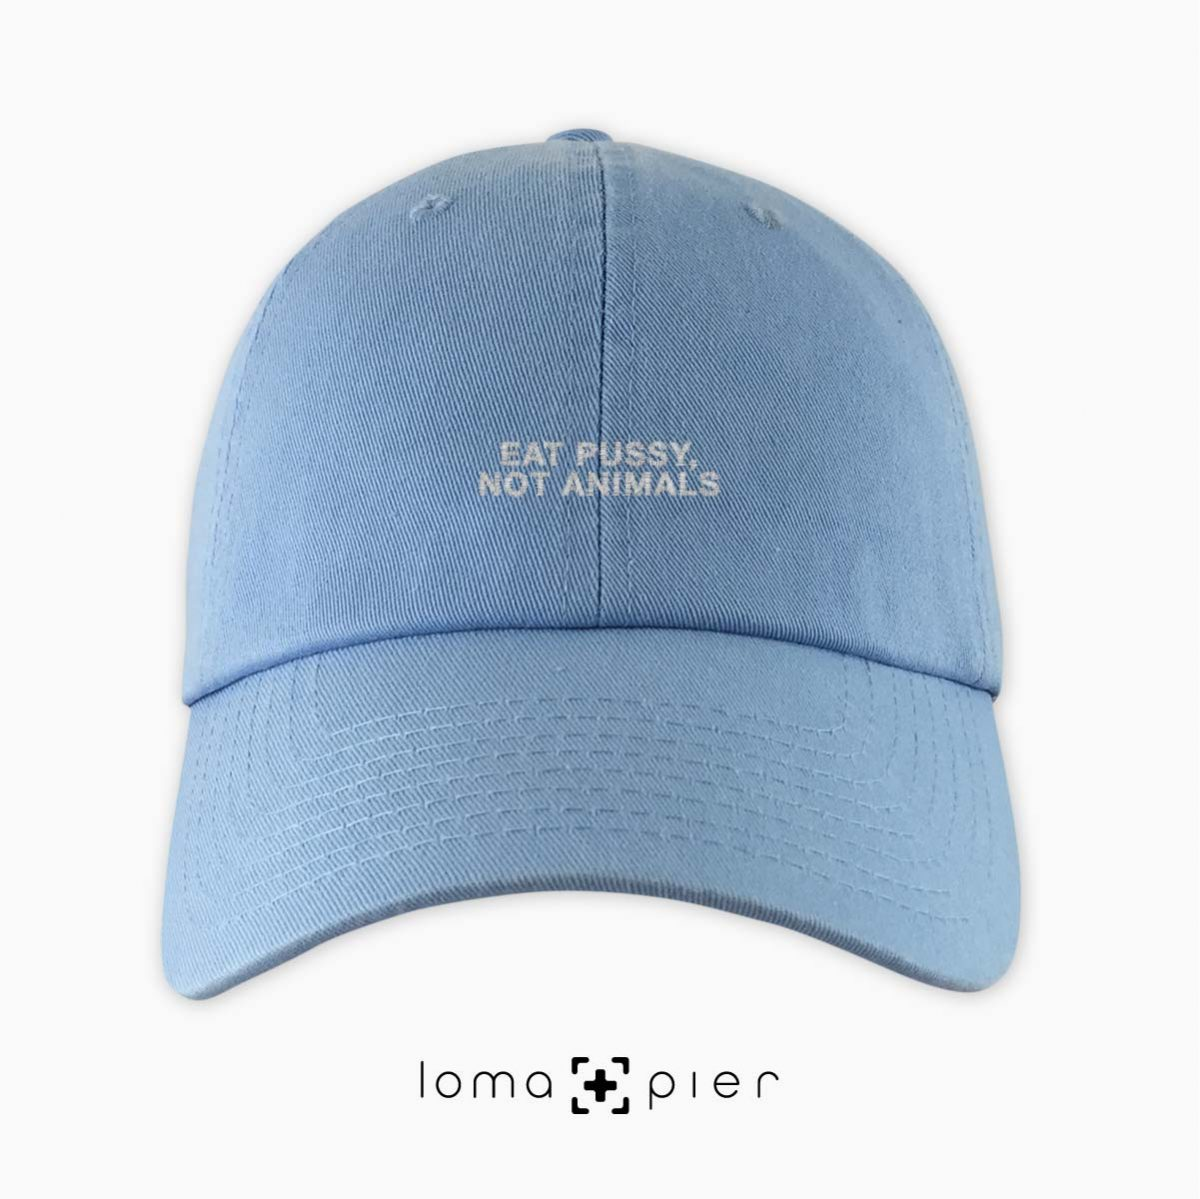 EAT PUSSY, NOT ANIMALS typography embroidered on a baby blue unstructured dad hat with white thread by loma+pier hat store made in the USA